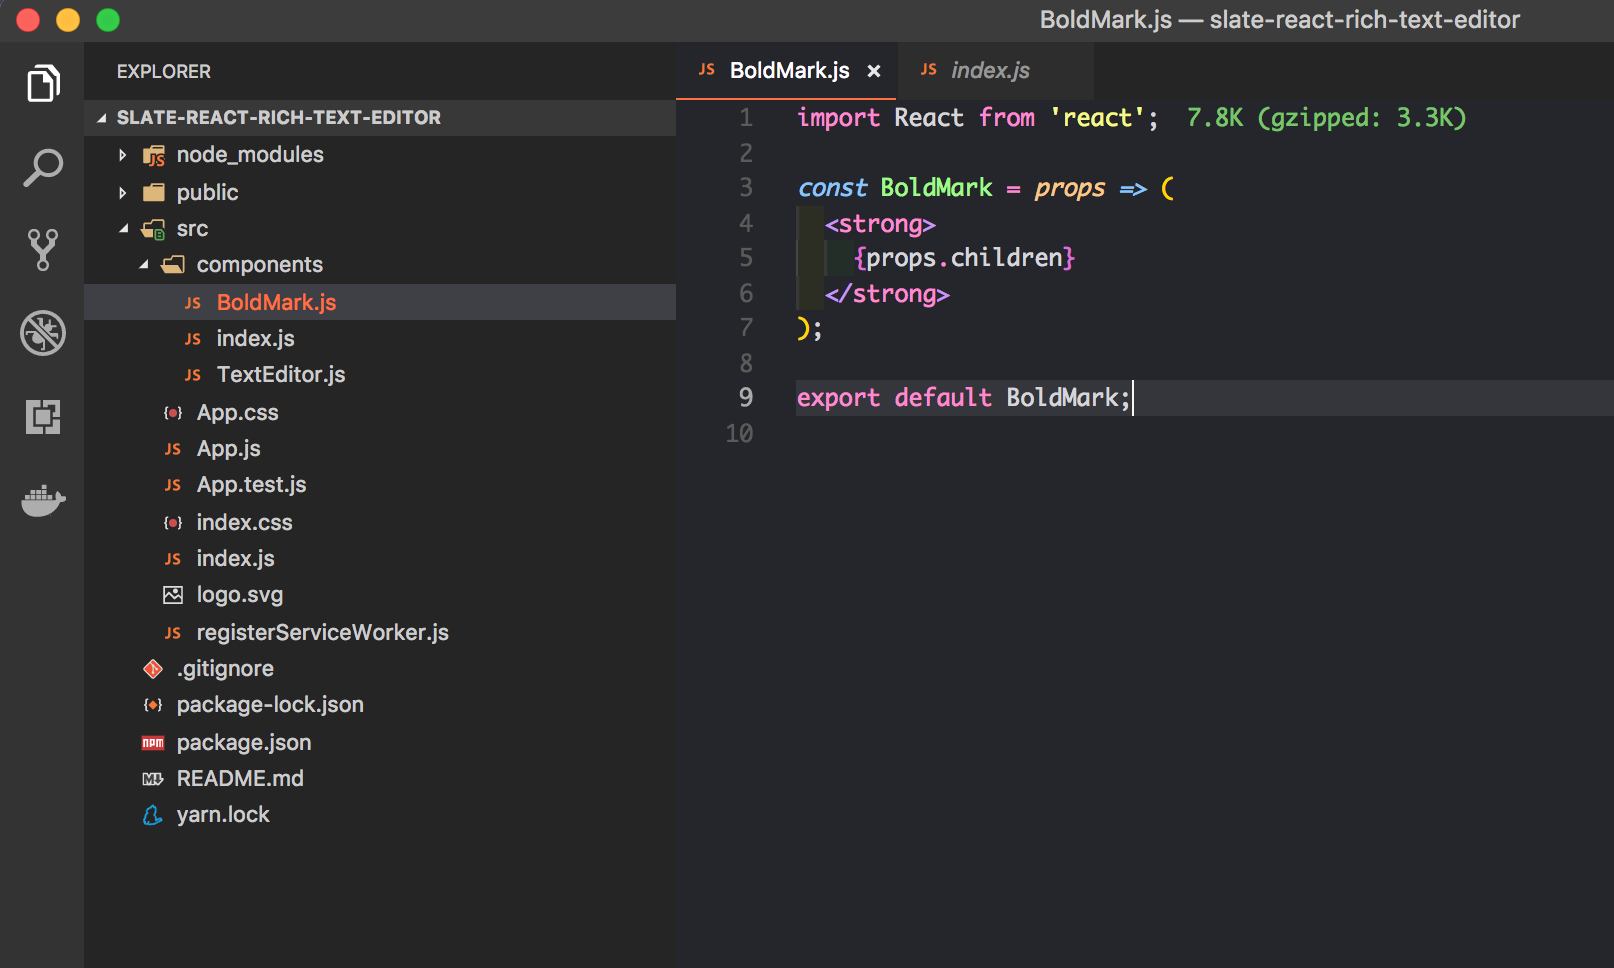 Let's Build a Fast, Slick and Customizable Rich Text Editor